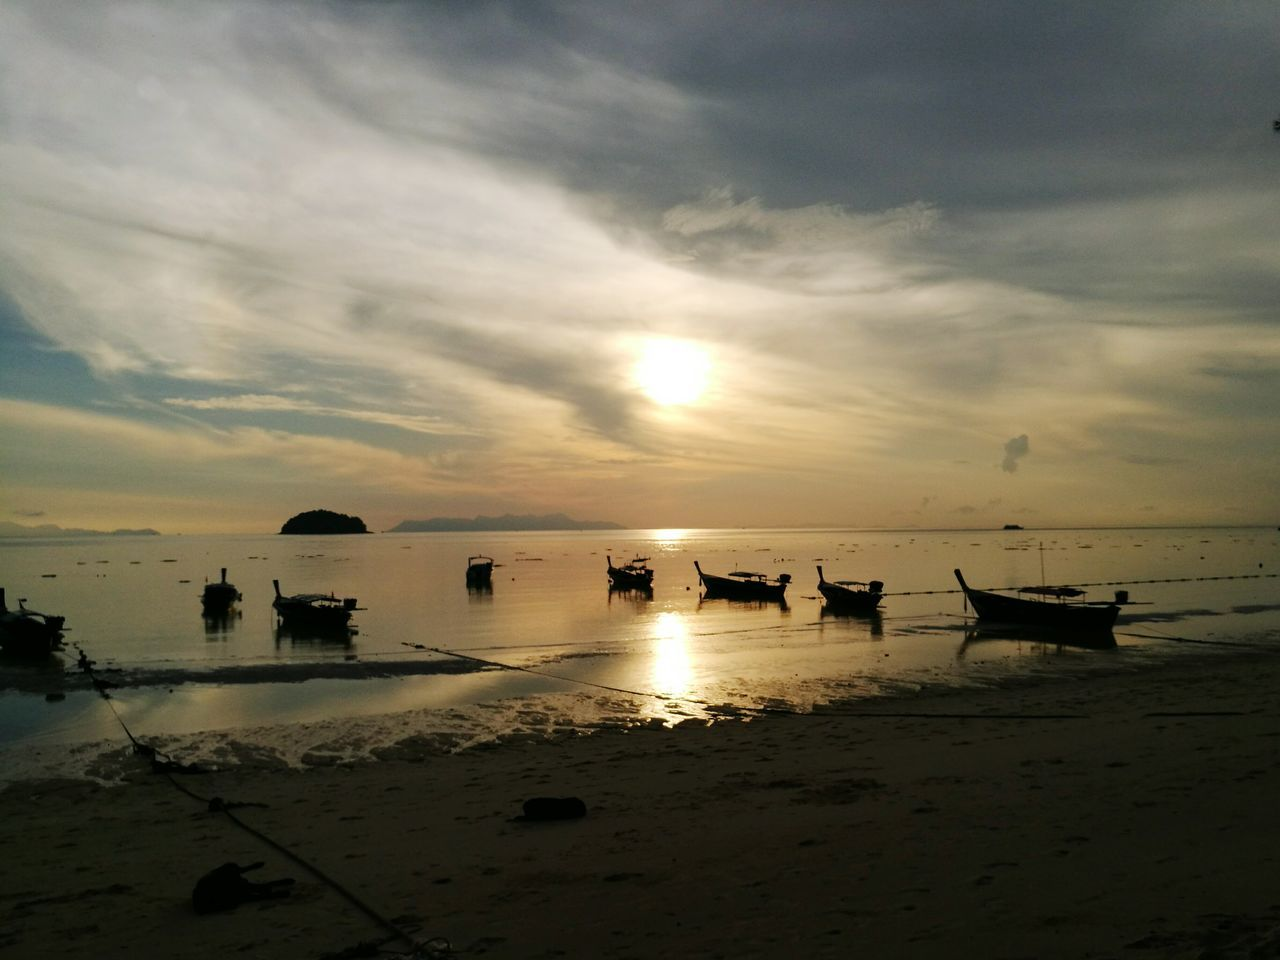 sea, beach, water, sunset, sky, nature, beauty in nature, scenics, shore, sand, cloud - sky, horizon over water, tranquil scene, tranquility, outdoors, no people, silhouette, nautical vessel, day